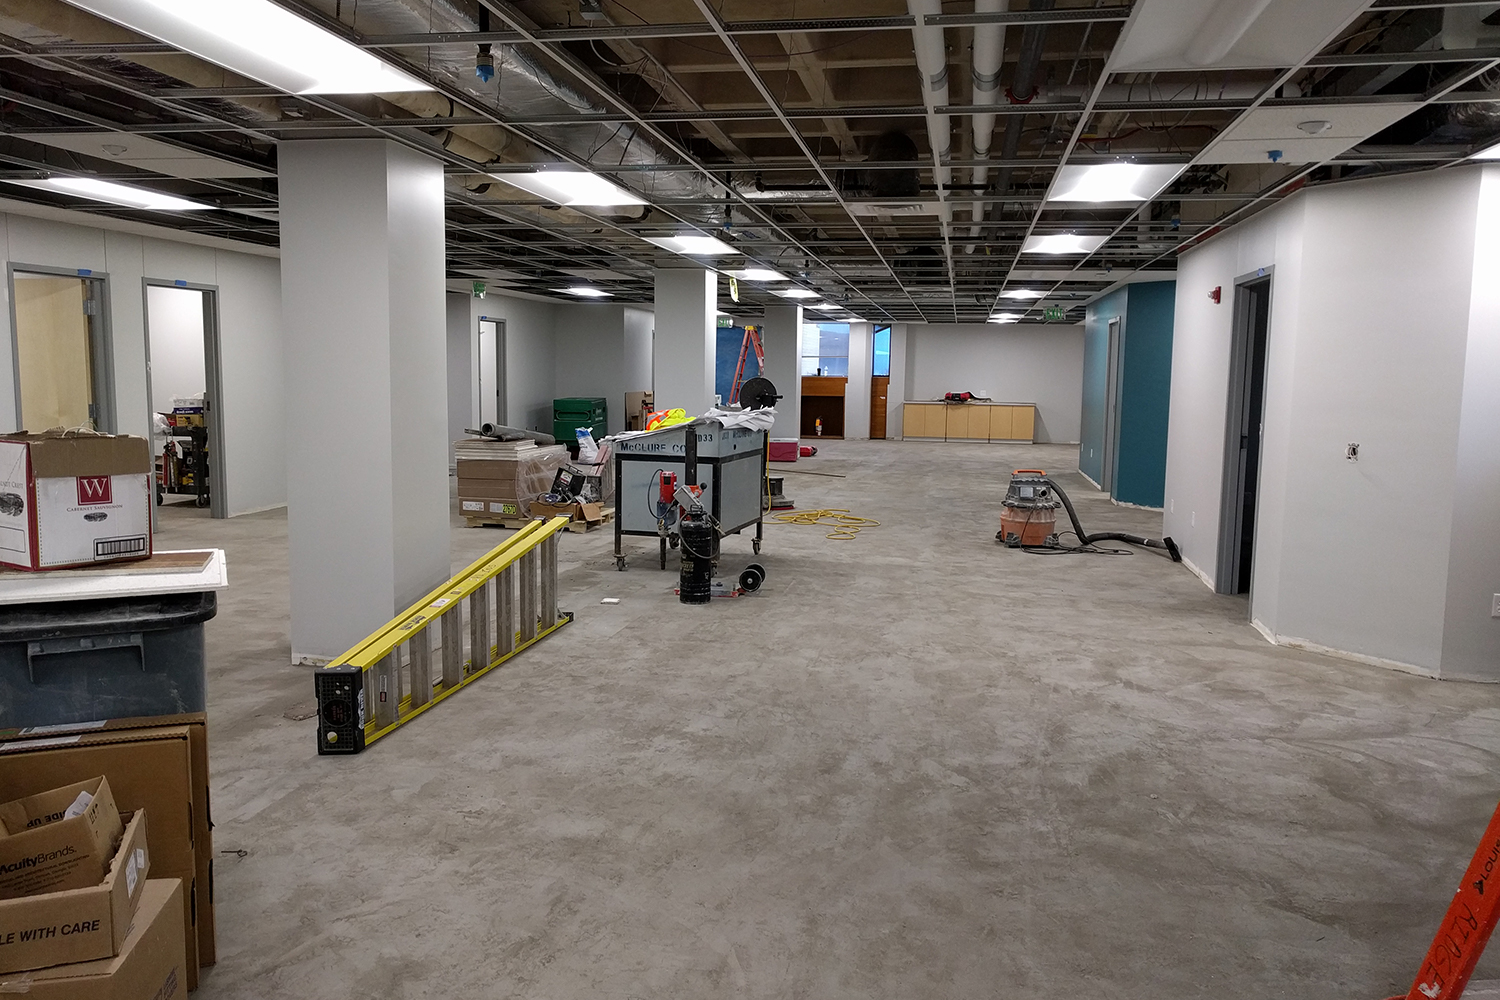 April 2018 - Ground Floor Paterno Construction